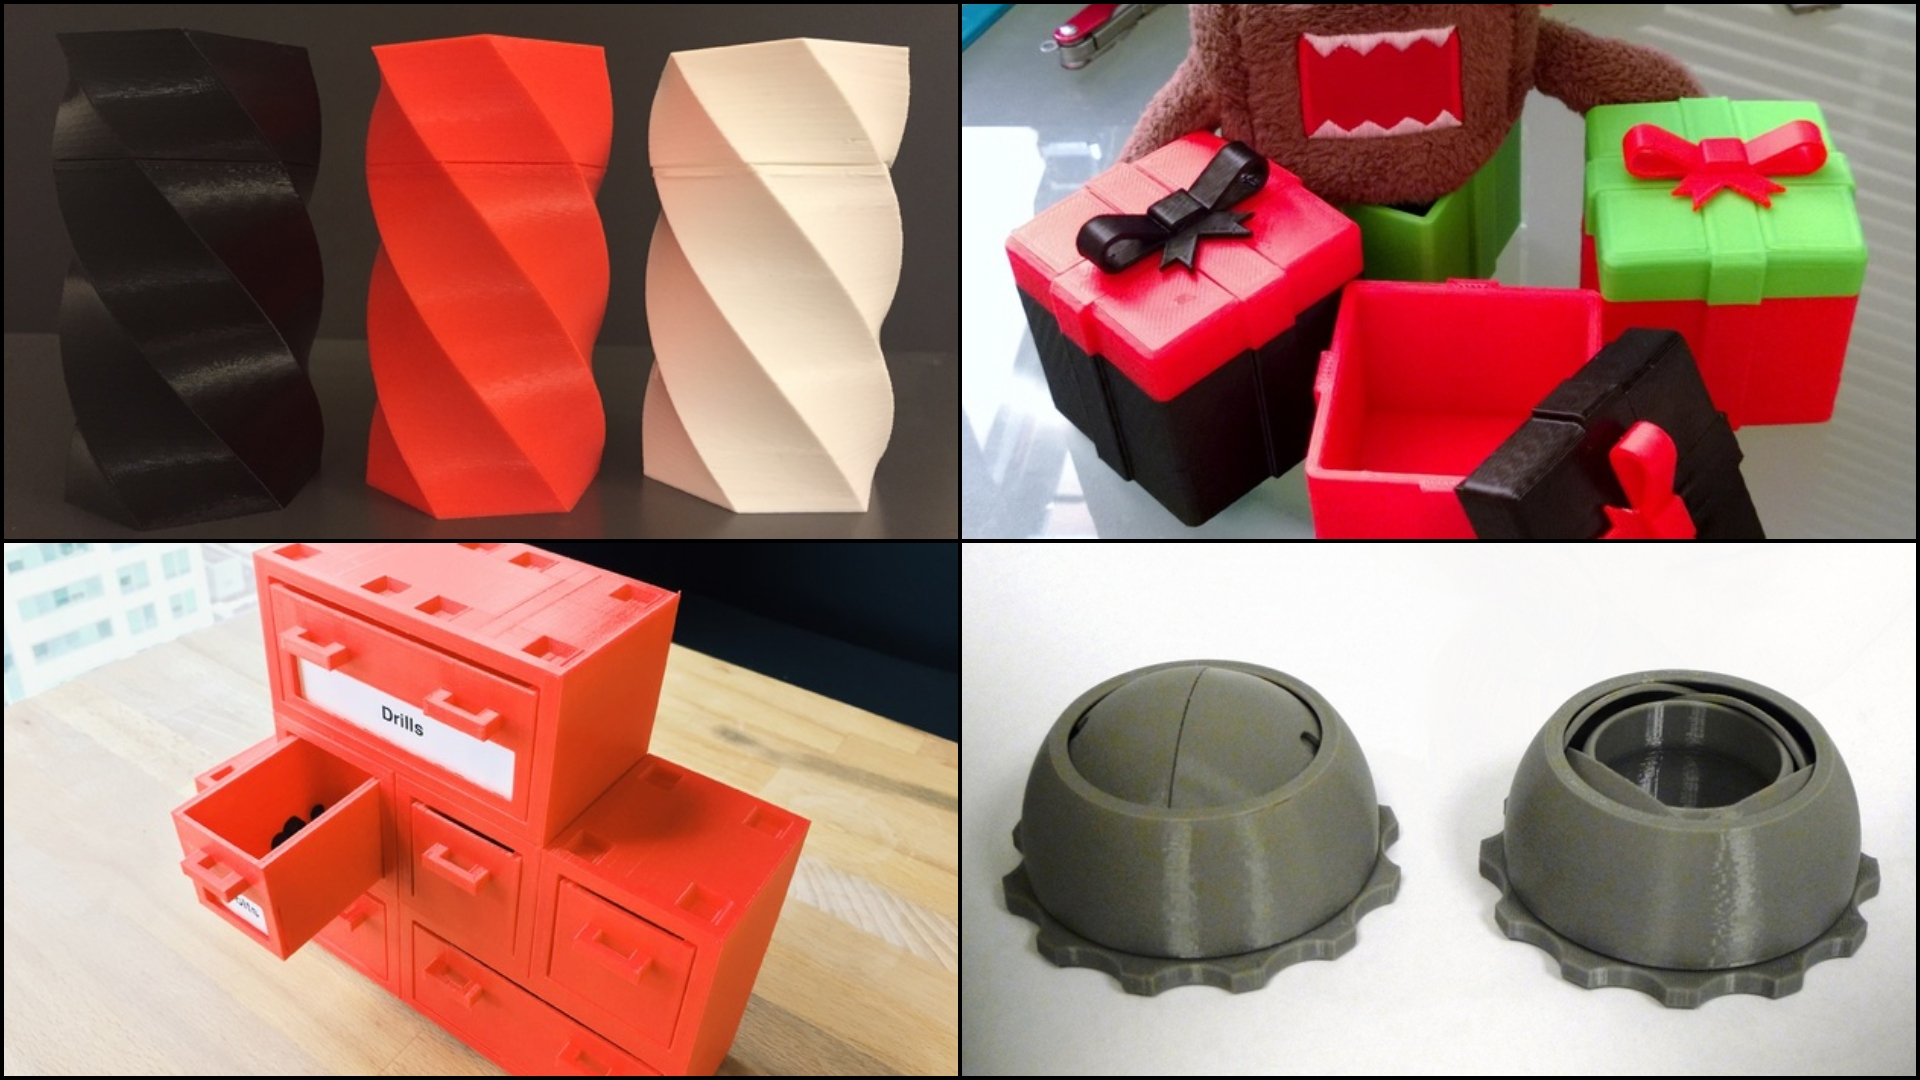 3D Printed Box: 10 Great Curated Models to 3D Print | All3DP